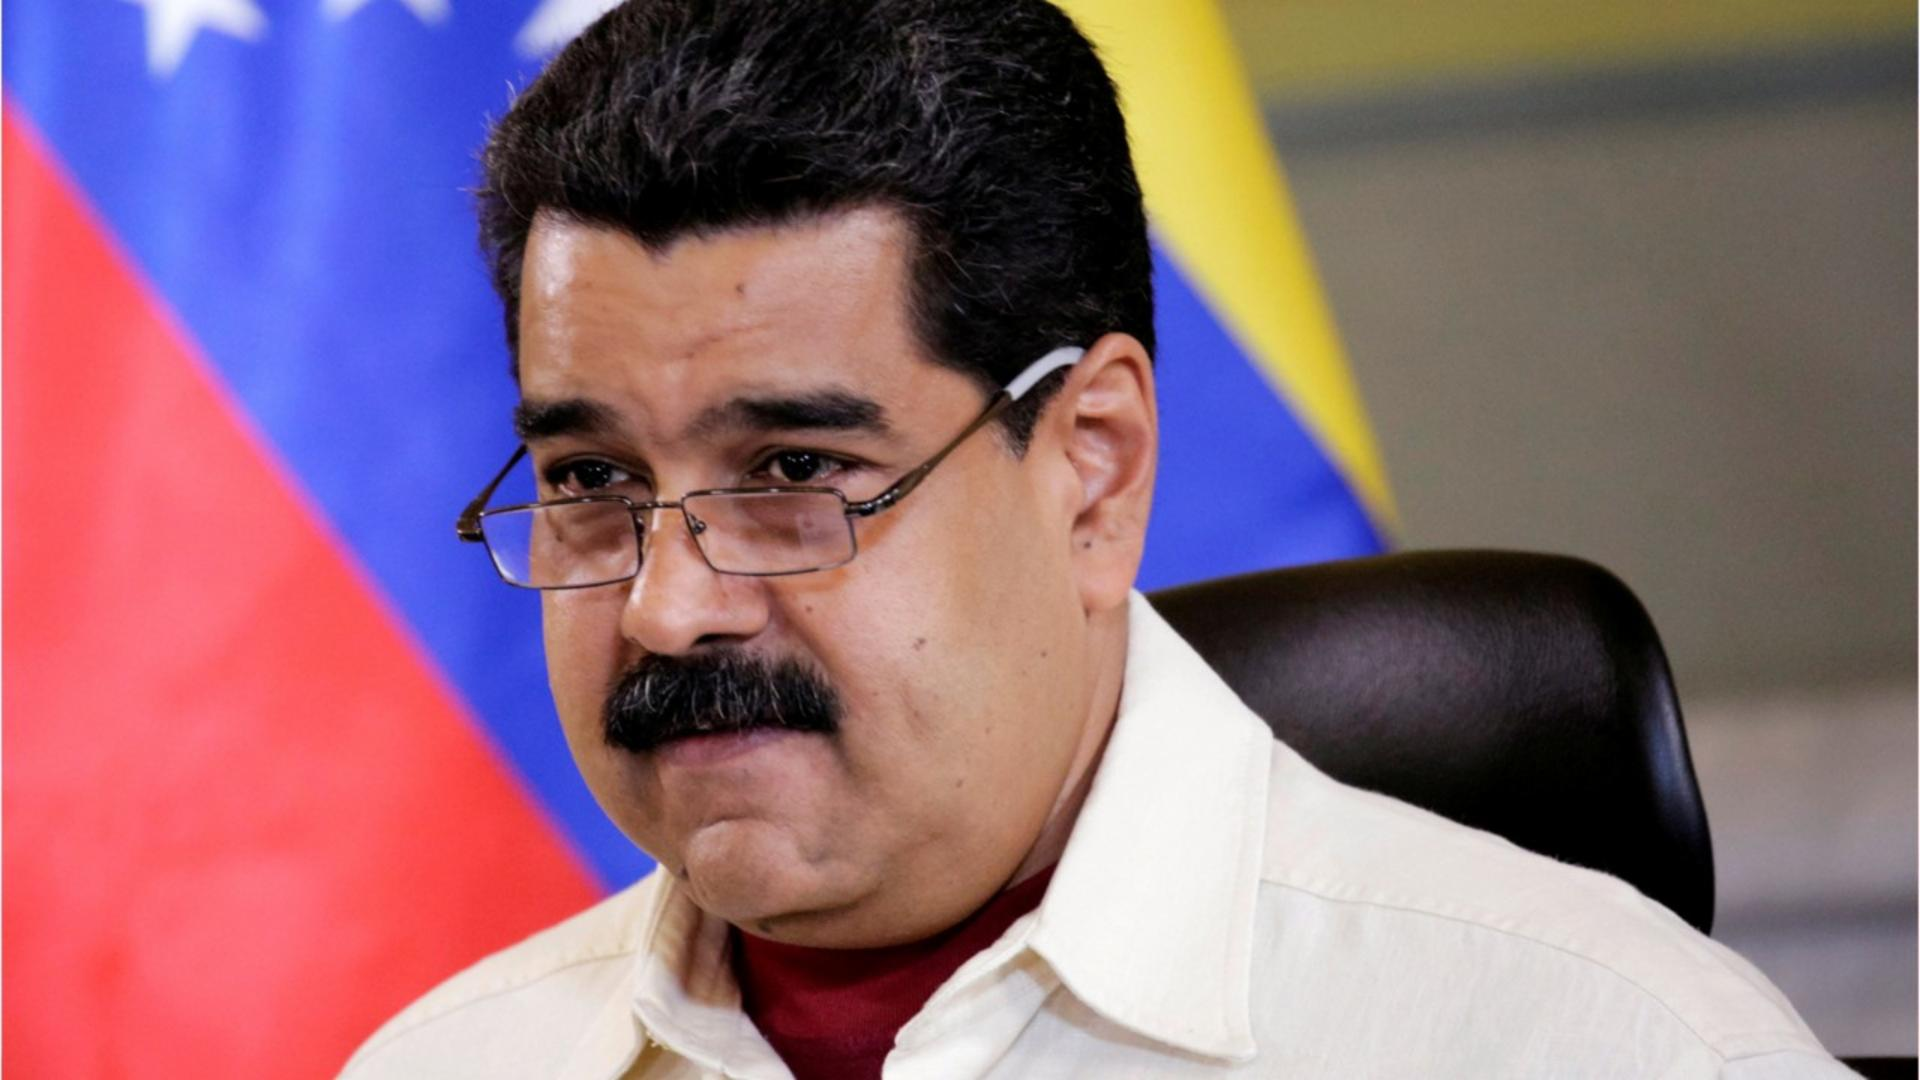 Six Arrested In Armed Drone Attack Against Venezuelan President